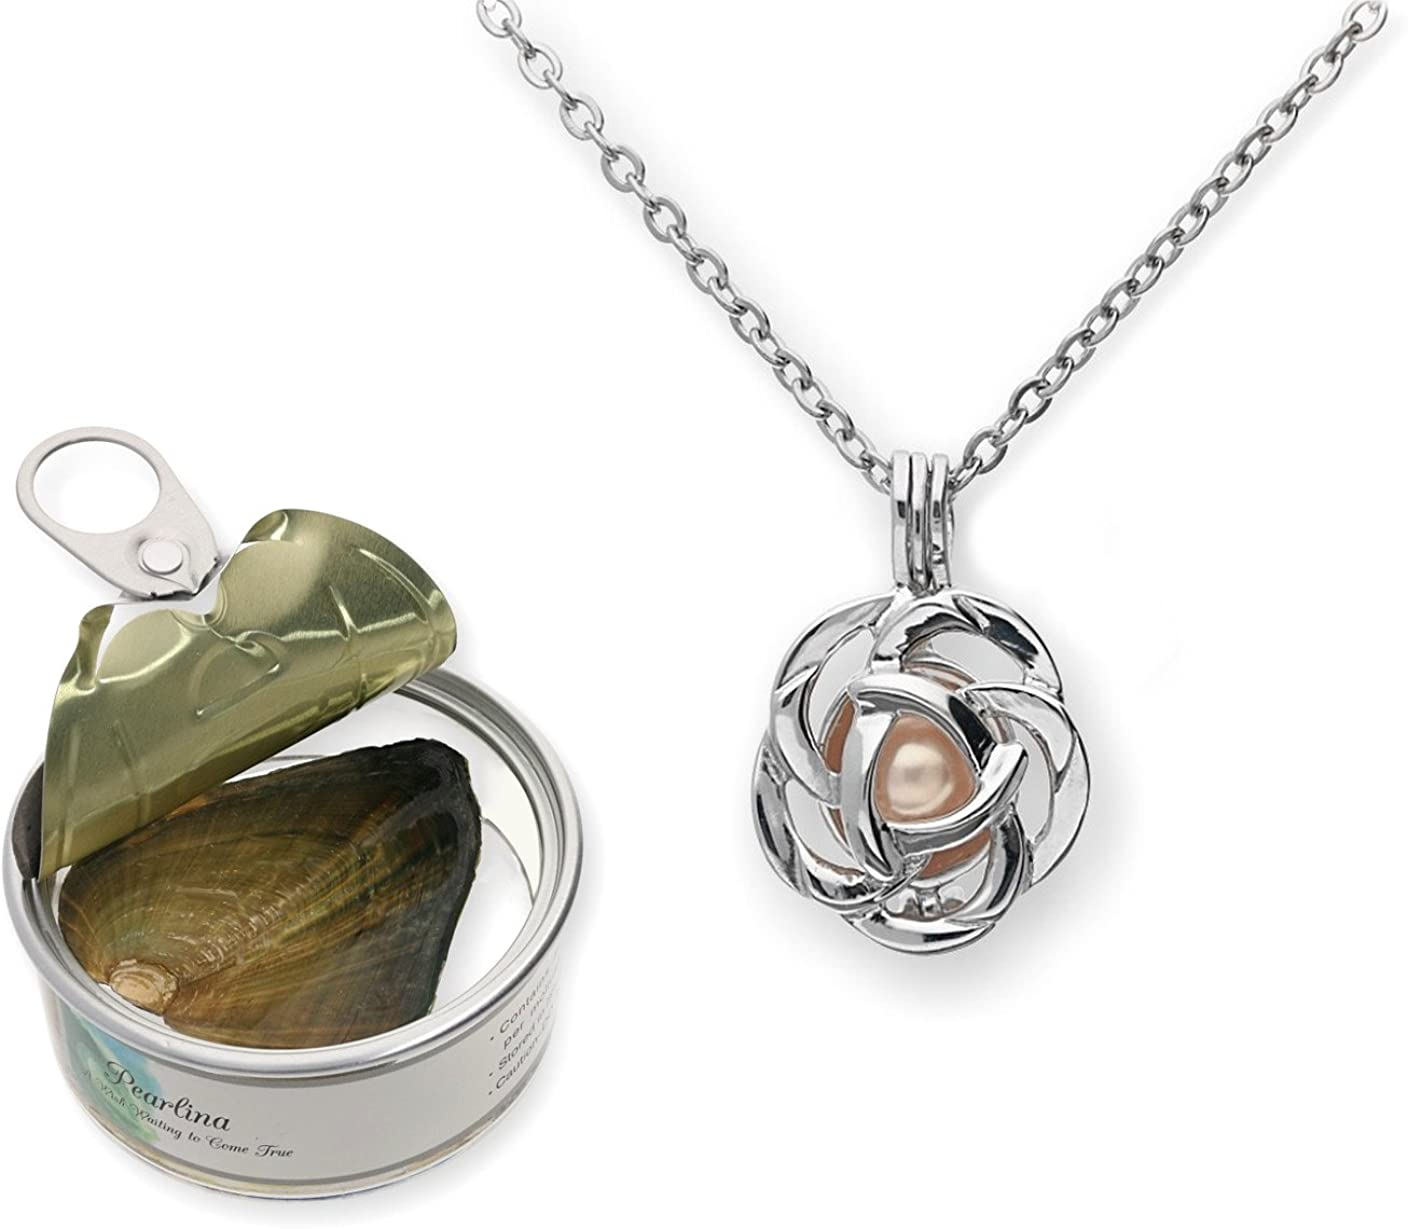 Pearlina Rose Flower Cultured Pearl Oyster Necklace Set Silver-tone Pendant w/ Stainless Steel Chain 18